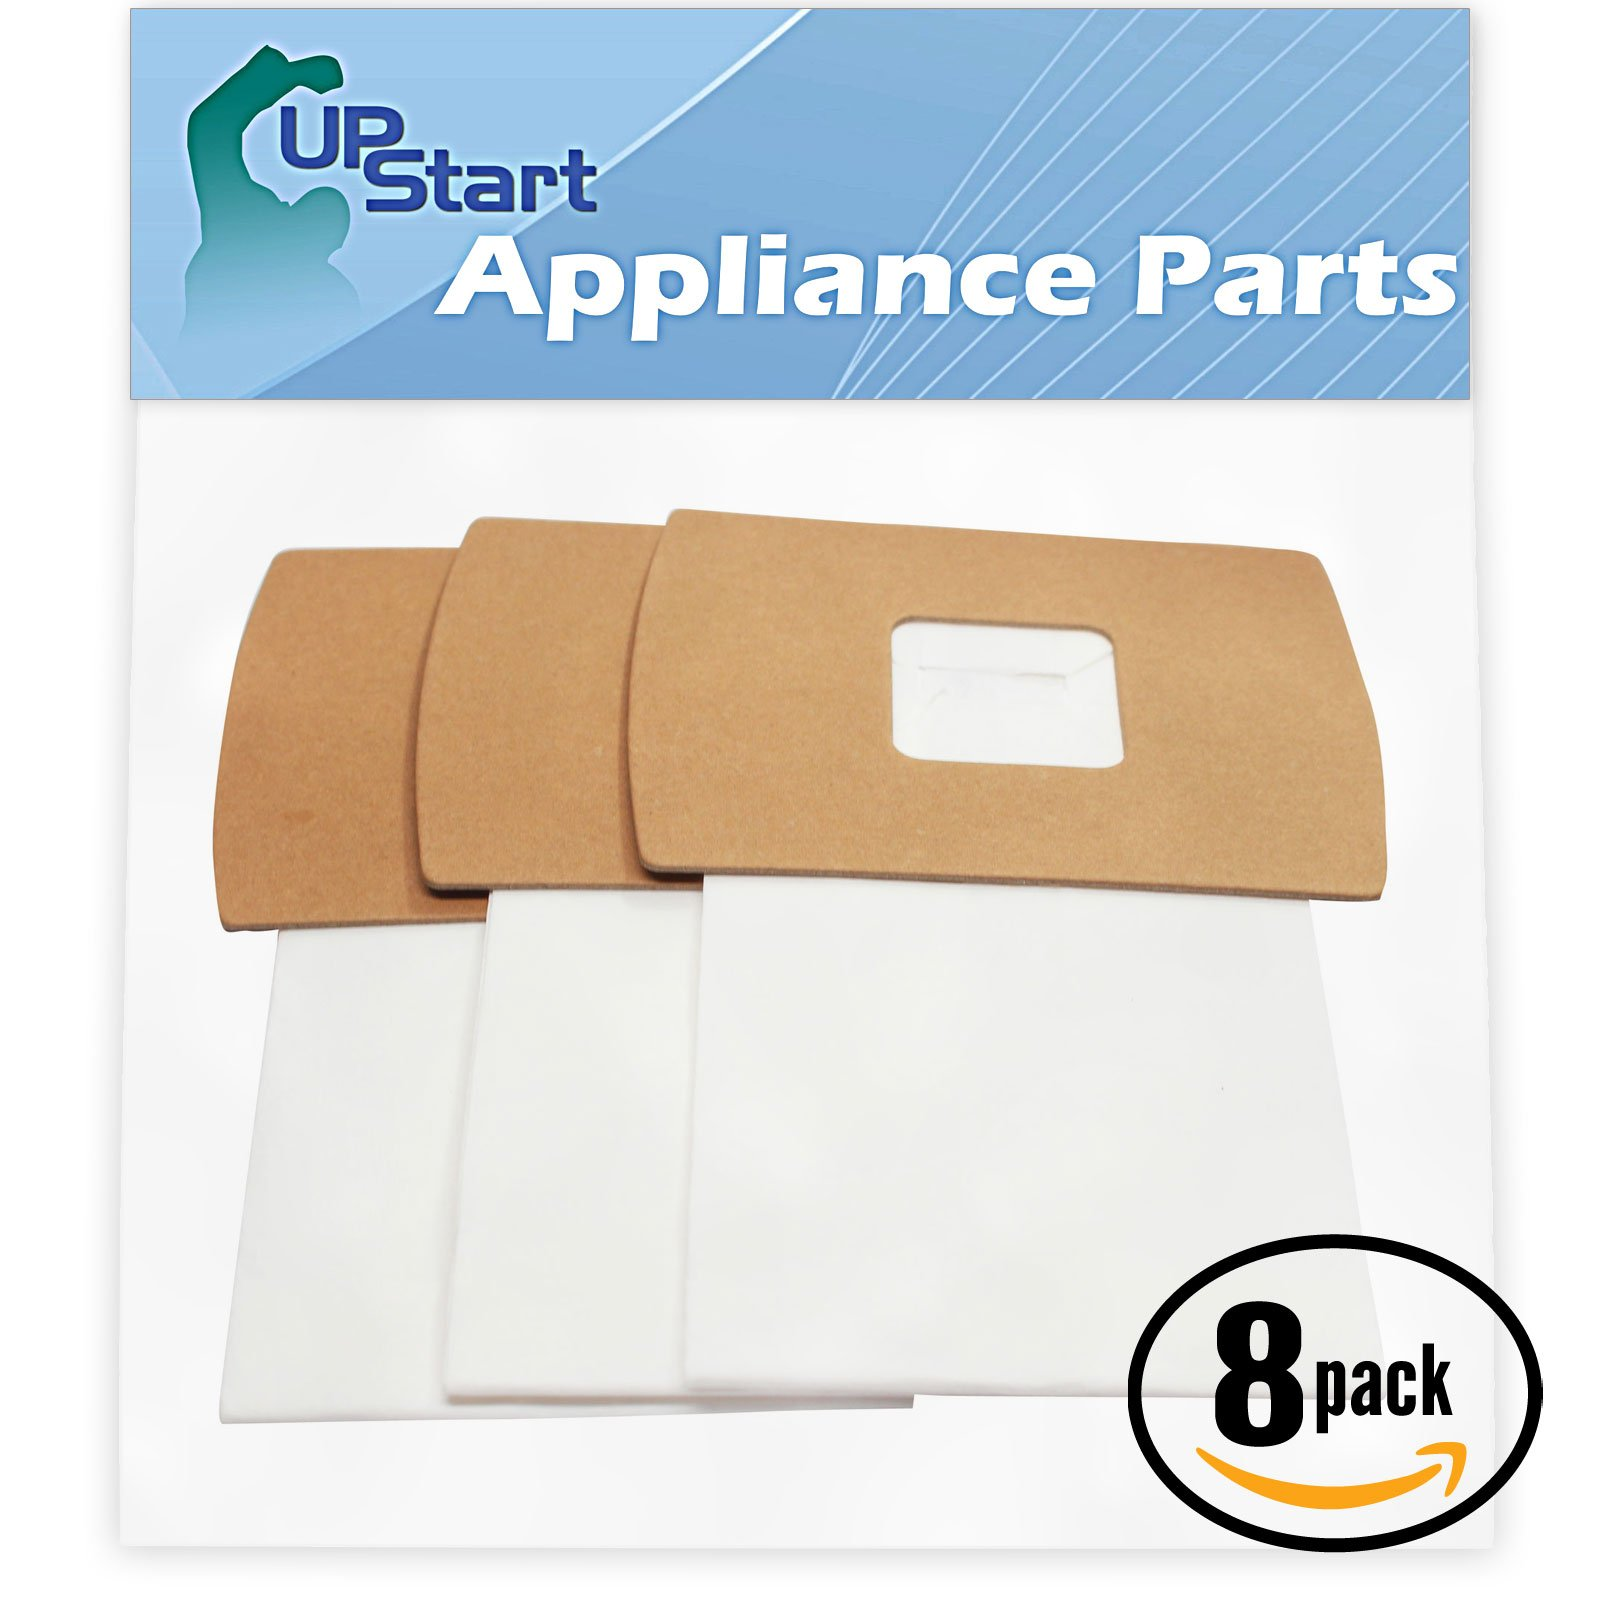 24 Replacement Type BB Buster B Vacuum Bags for Oreck - Compatible with Oreck XL2, Oreck PKBB12DW, Oreck BB900-DGR, Oreck XL PRO 5, Oreck Buster B, Oreck BB280D, Oreck BB870AW, Oreck XL 3, Oreck XL 5, Oreck XL7, Oreck XL8000, Oreck XL9000, Oreck XL9200, O